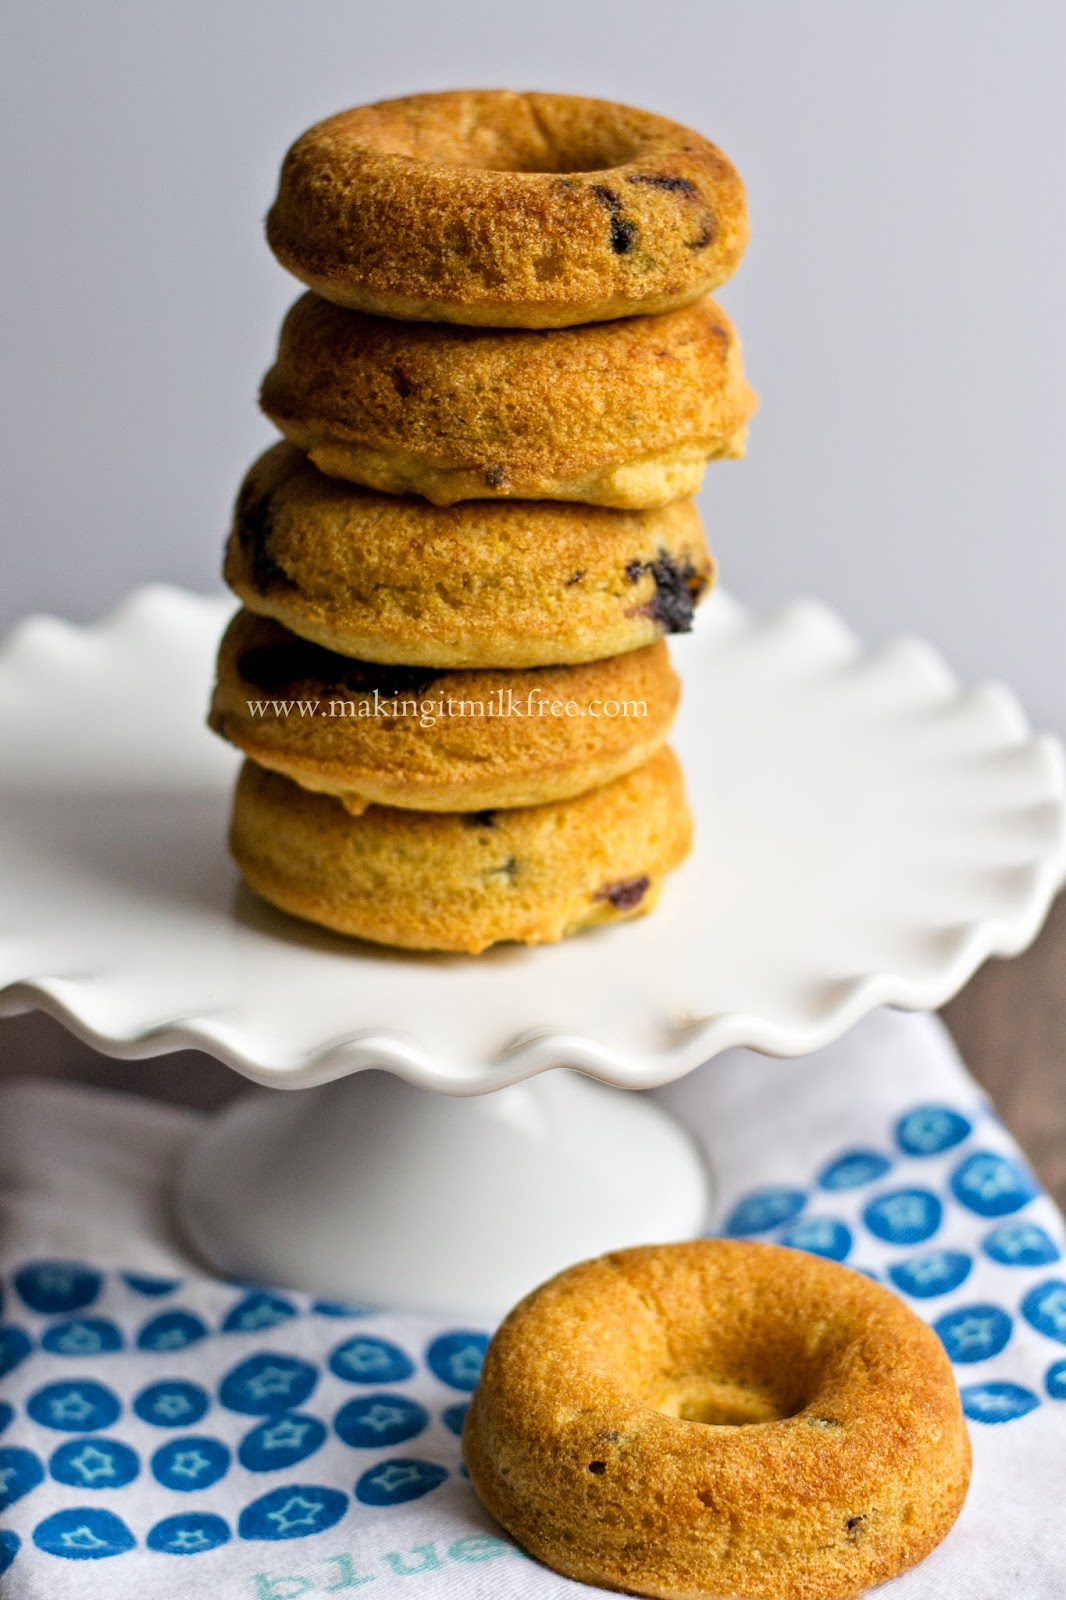 Blueberry Cornbread Donuts by Making it Milk-free